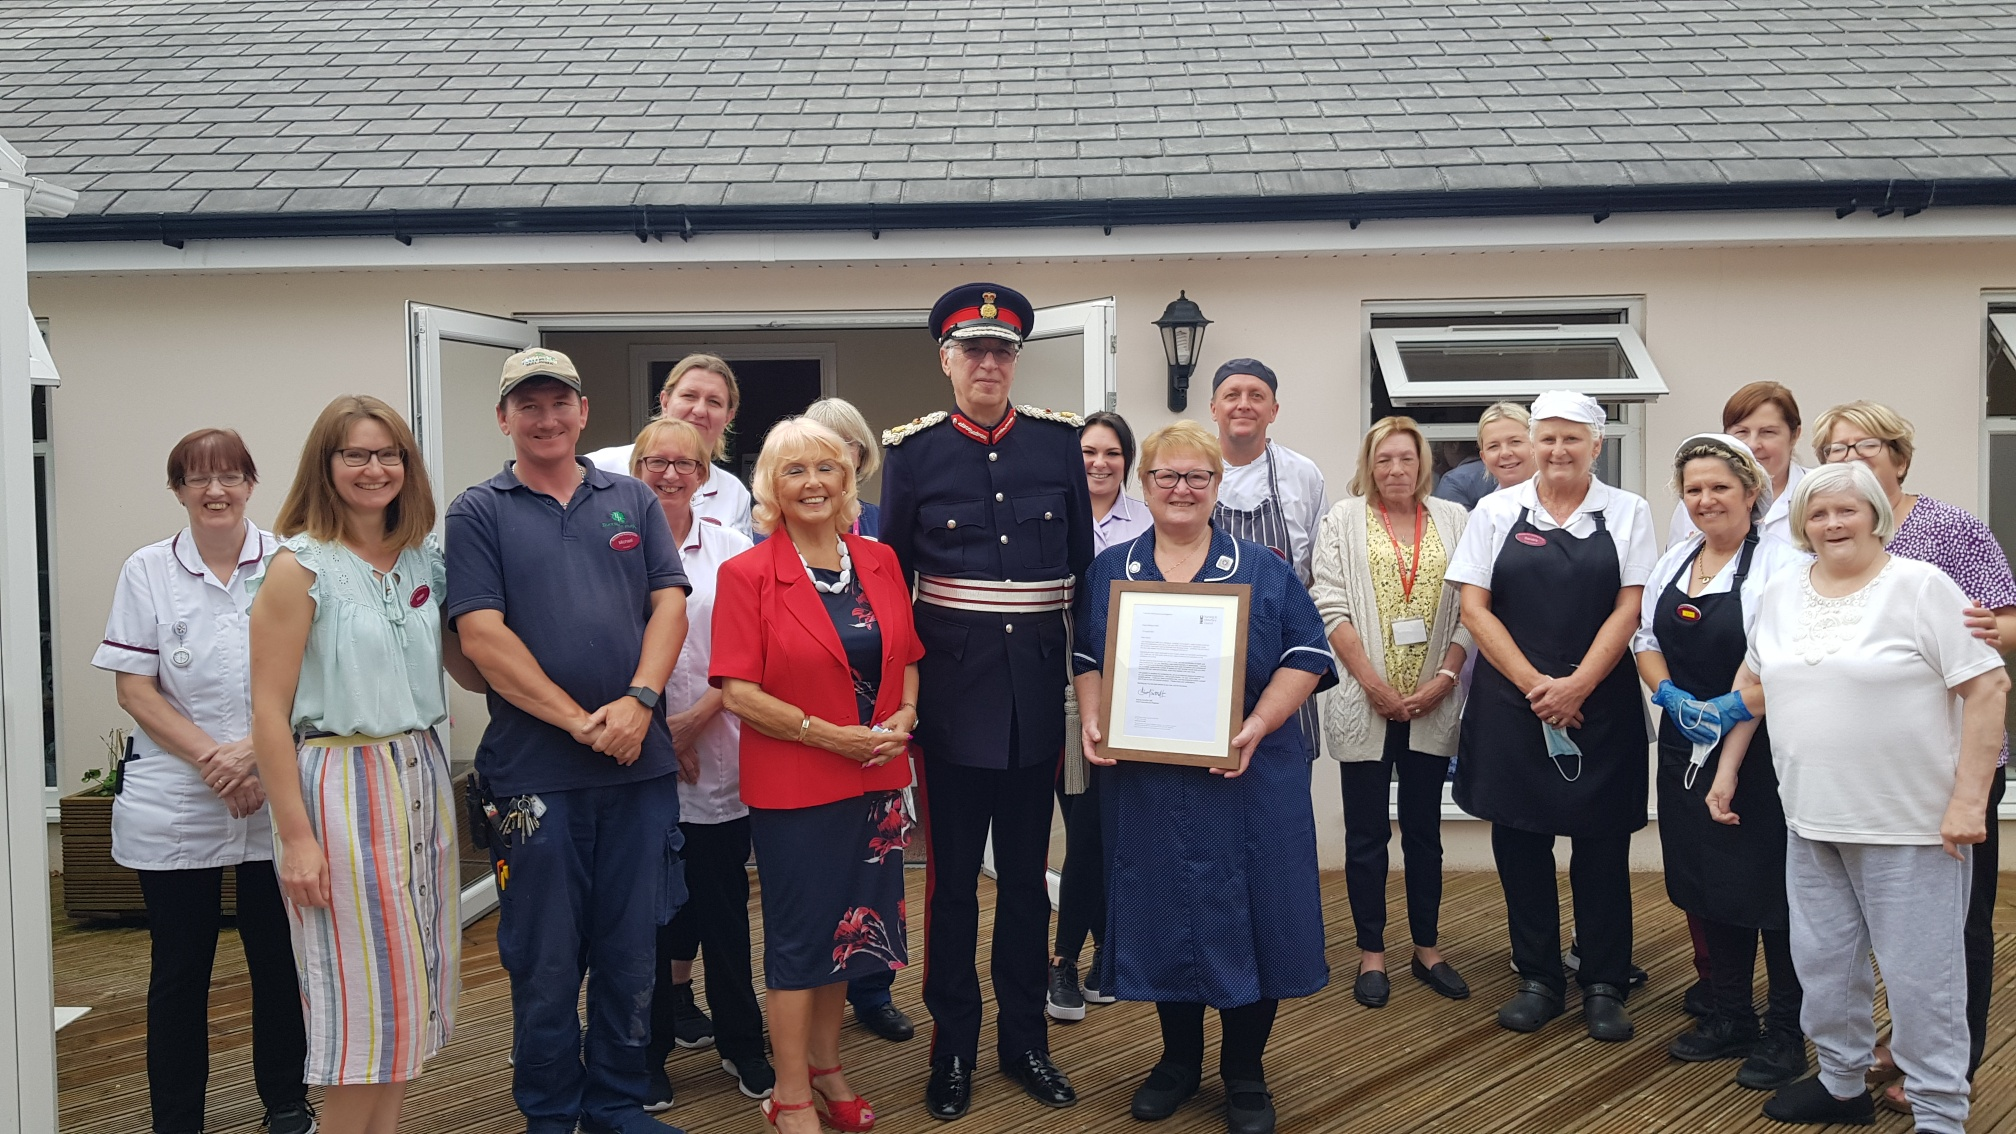 Nursing home matron given special certificate for 50 years of service